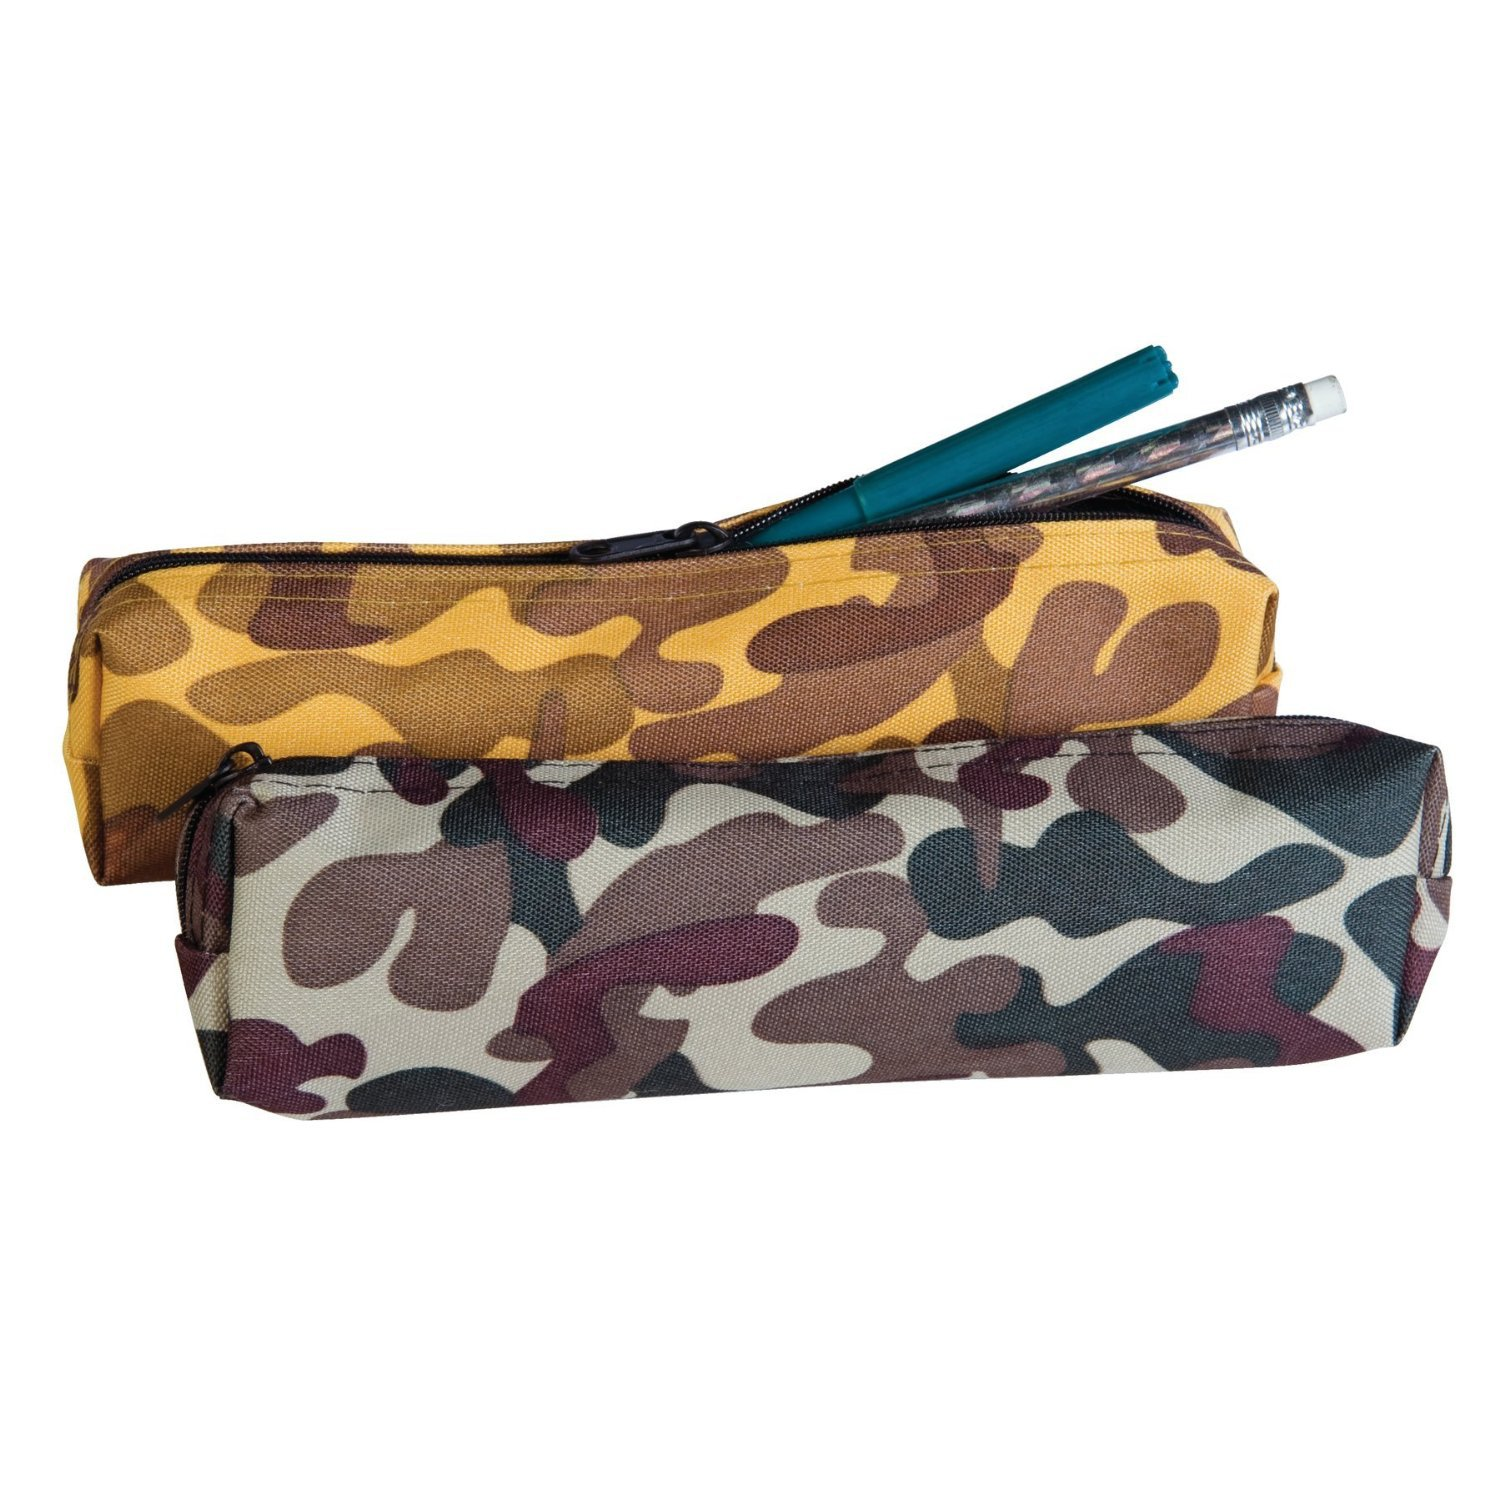 Camo Keepers Pencil Pouch / Case 1pc Assorted Colors